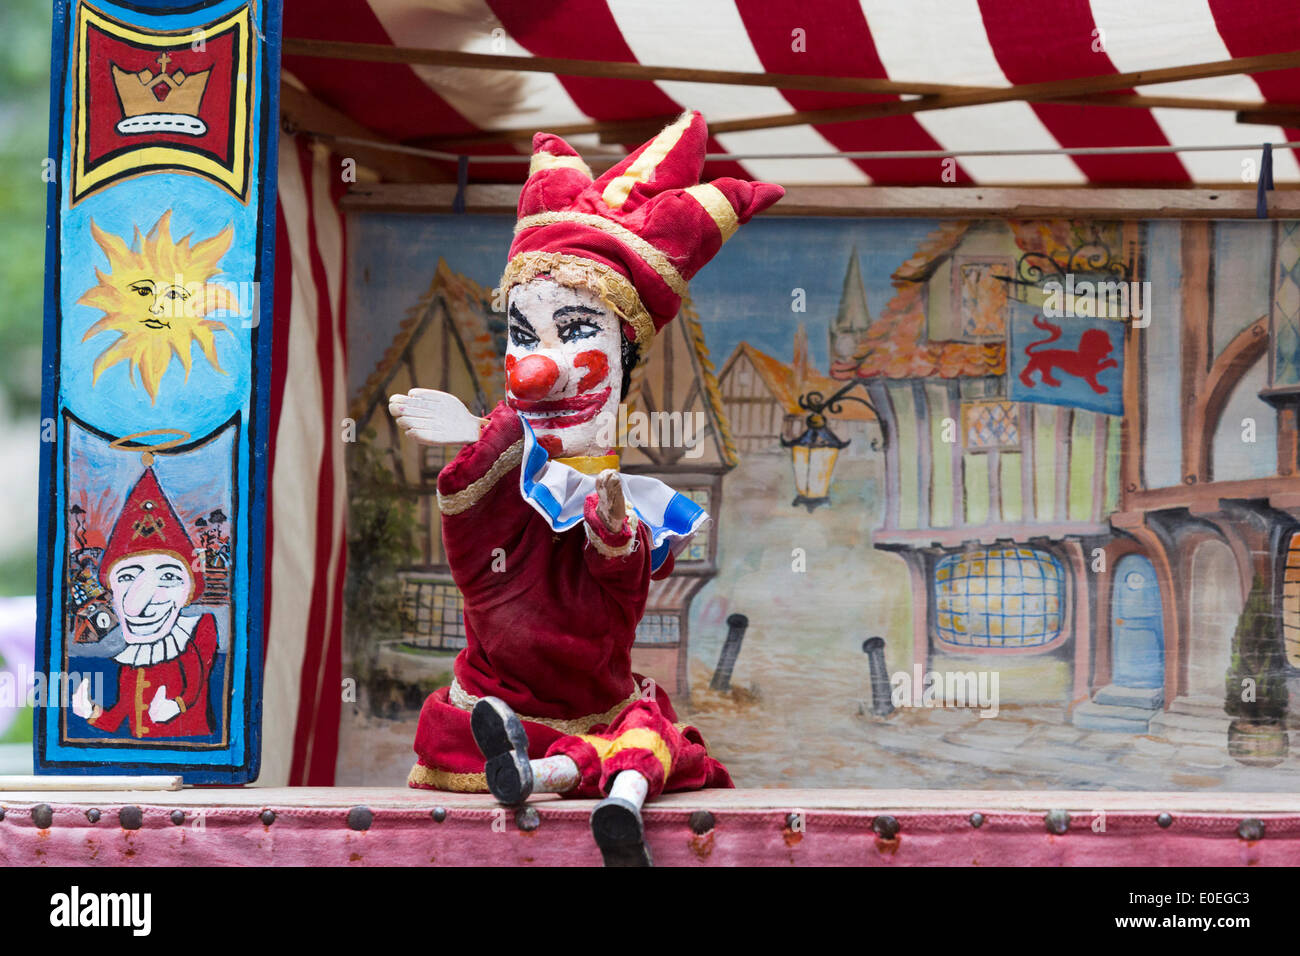 Punch And Judy Puppeteer Stock Photos & Punch And Judy